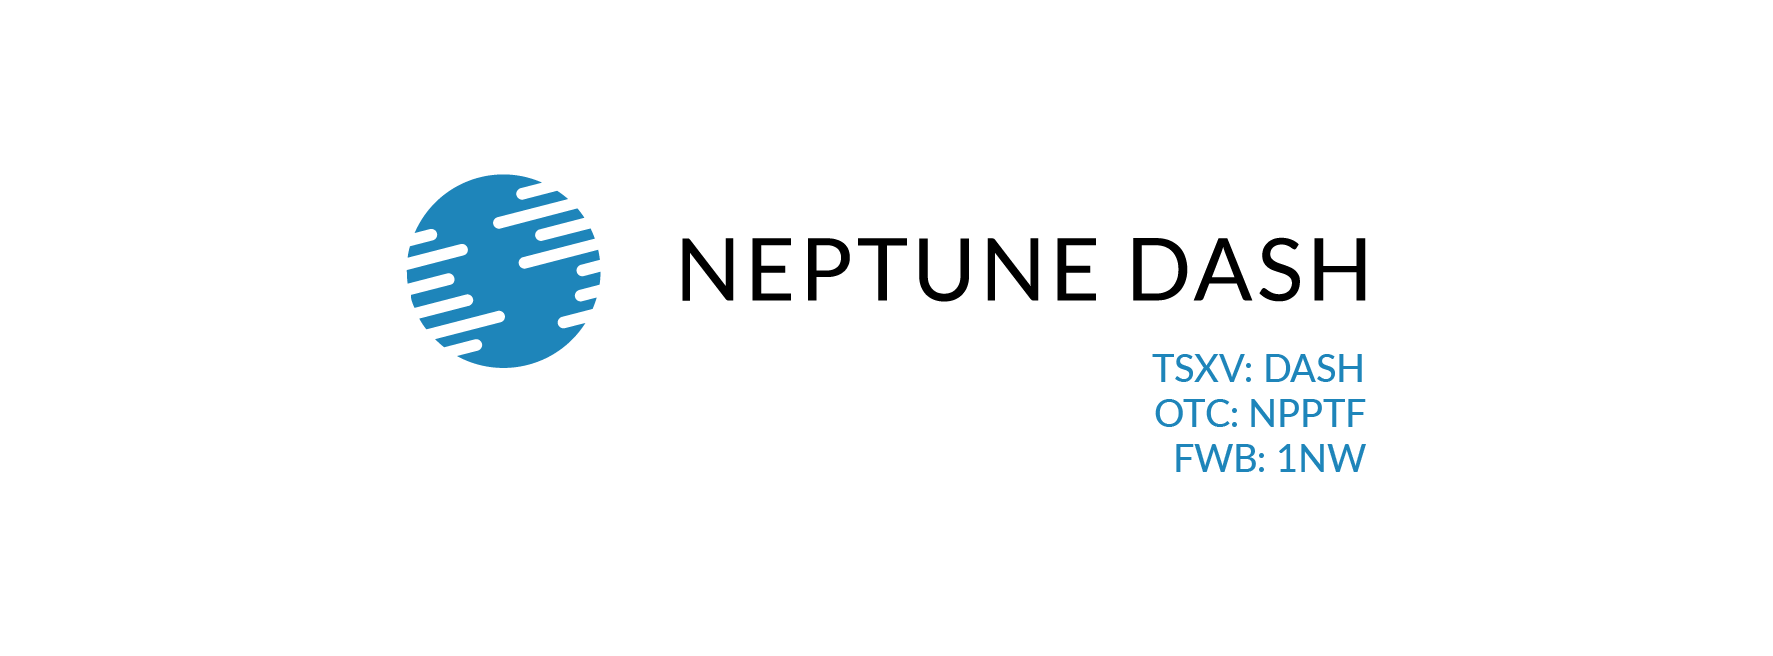 Neptune Dash Technologies Announces Appointment of New Director and Corporate Update